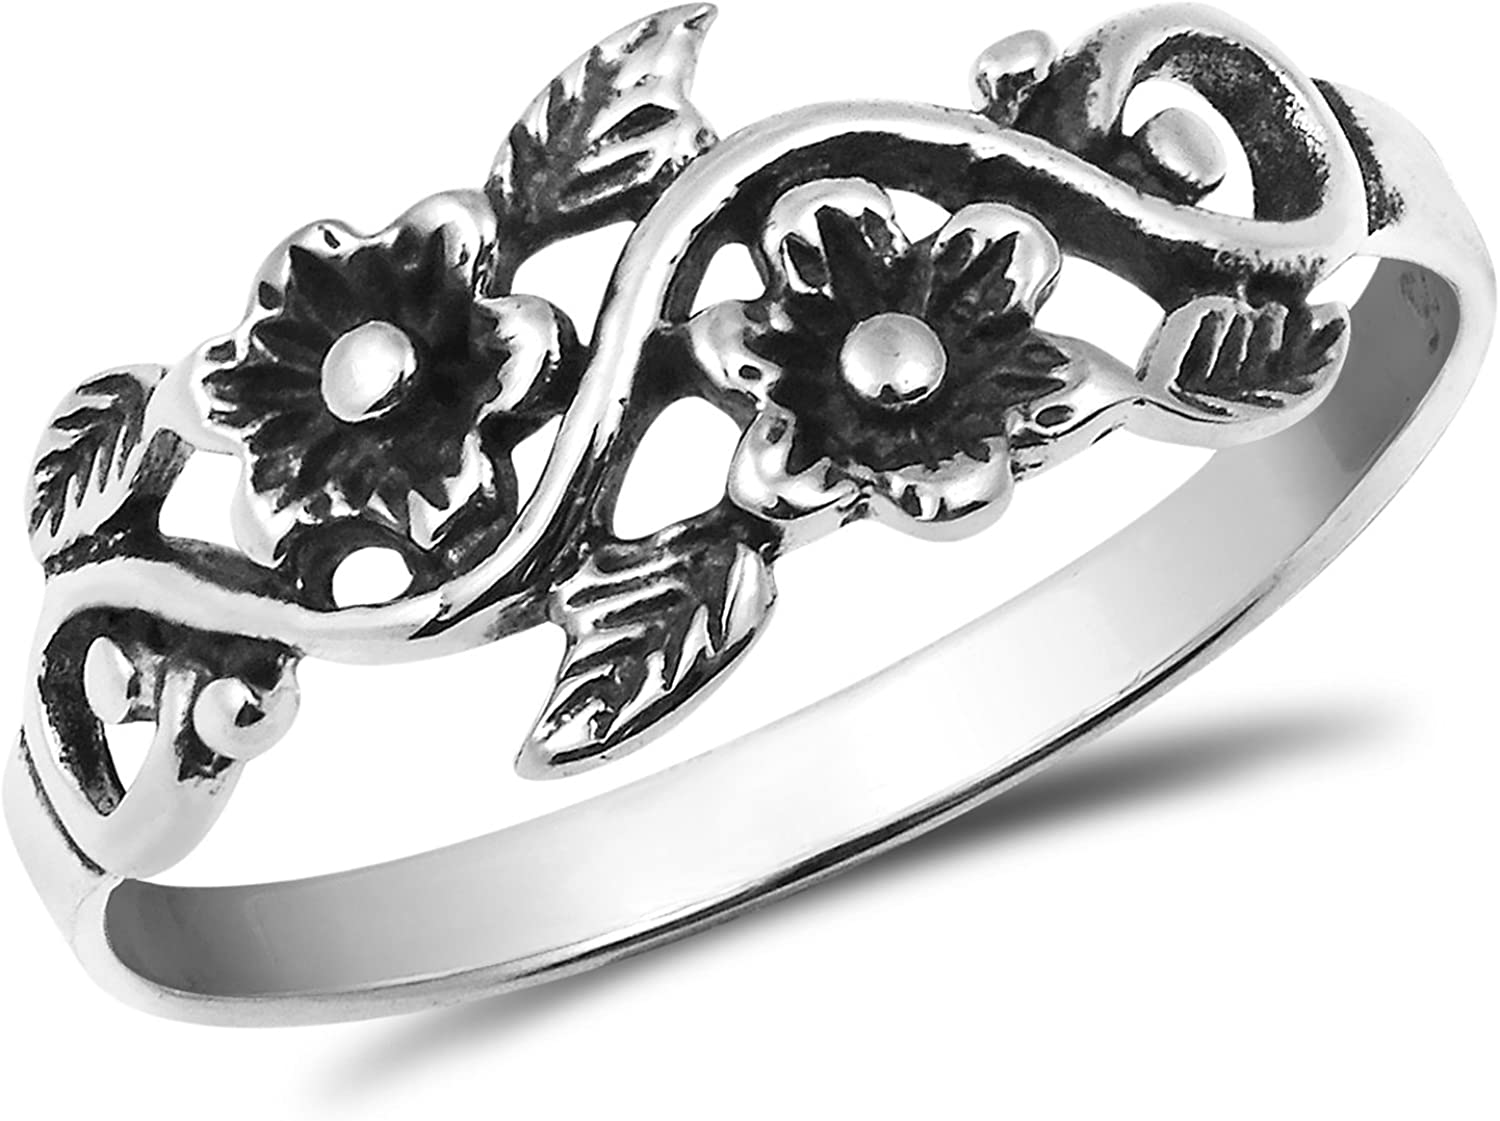 Blooming online shop Super popular specialty store Wild Floral Vine .925 Ring Silver Sterling Band